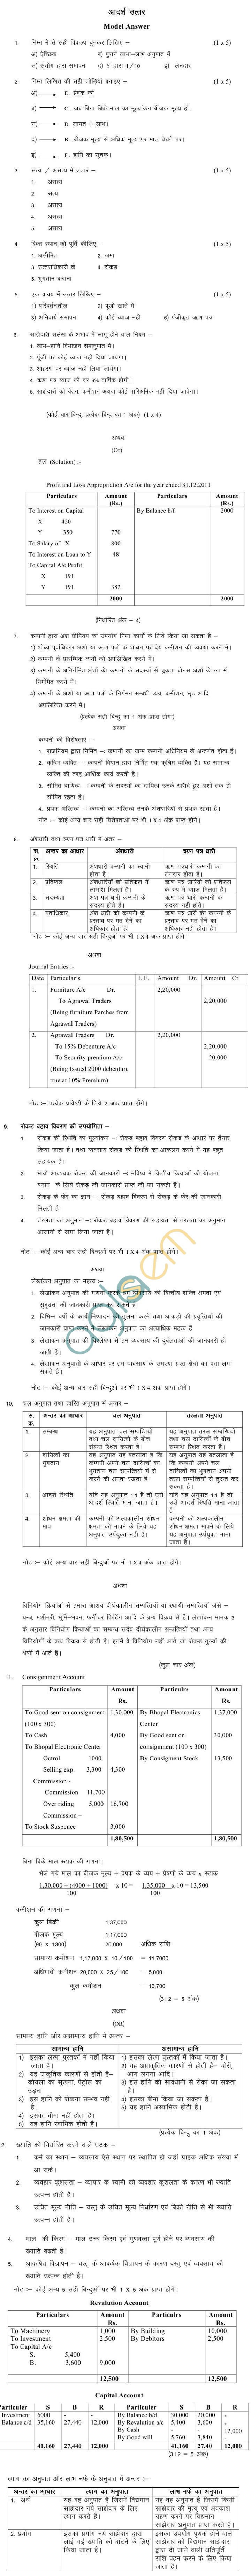 MP Board Class XII Book Keep and Accountancy Model Questions & Answers - Set 2